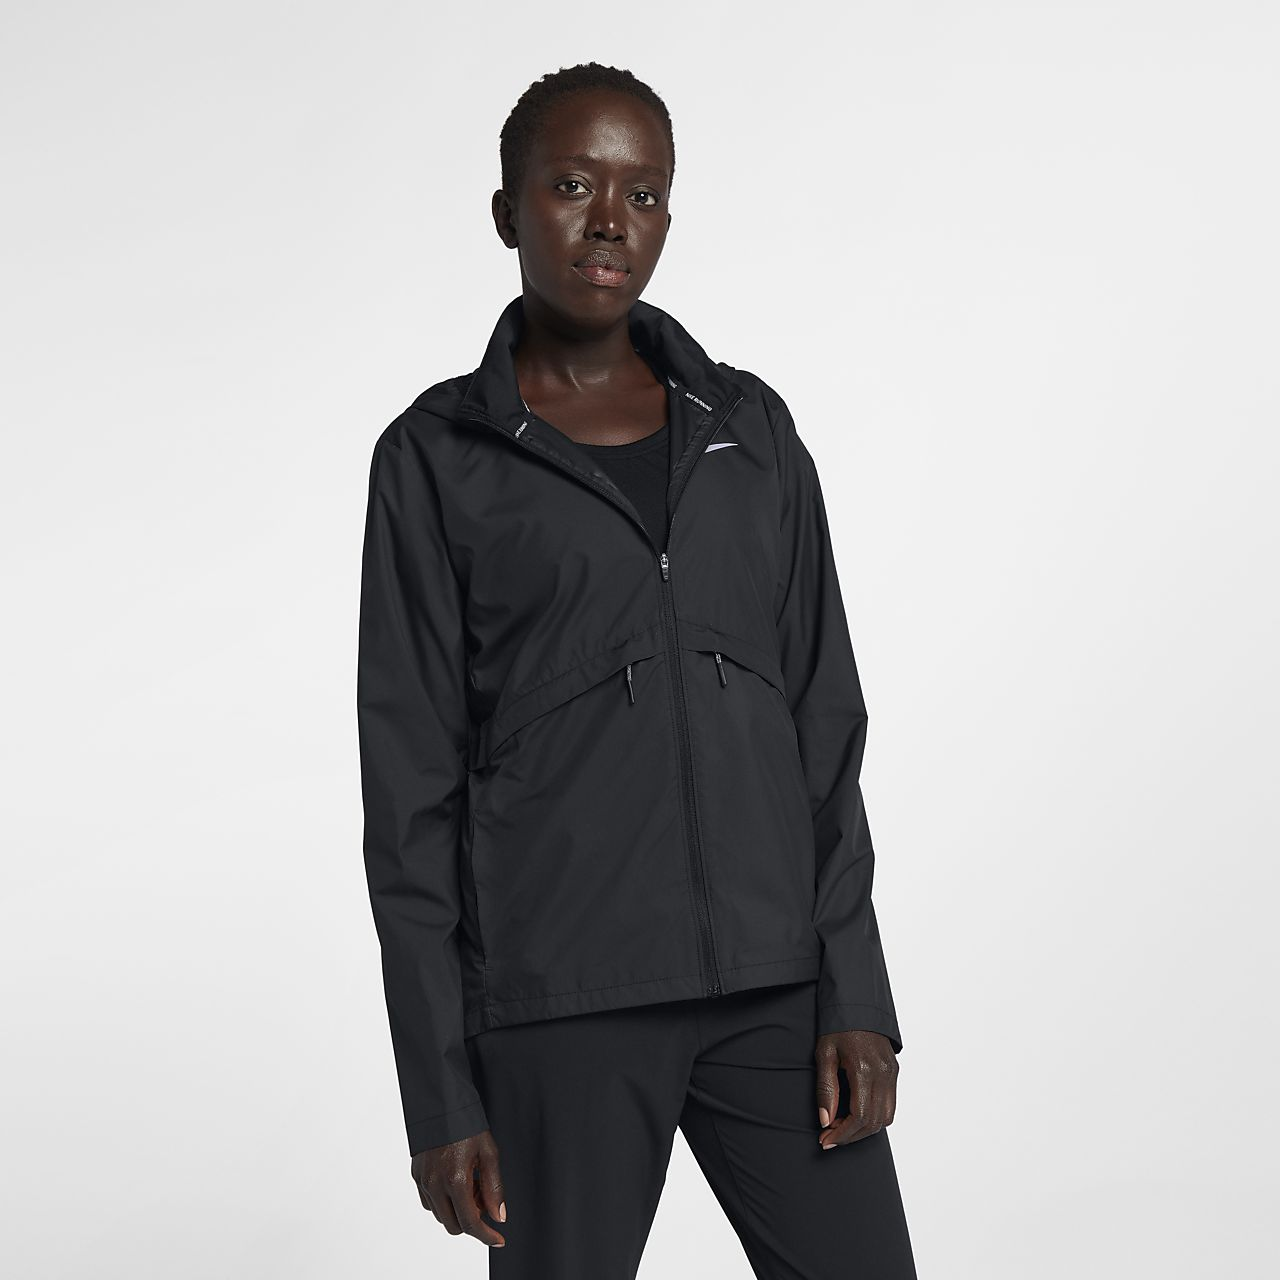 a9572237f8ac Nike Essential Women s Packable Running Rain Jacket . Nike.com